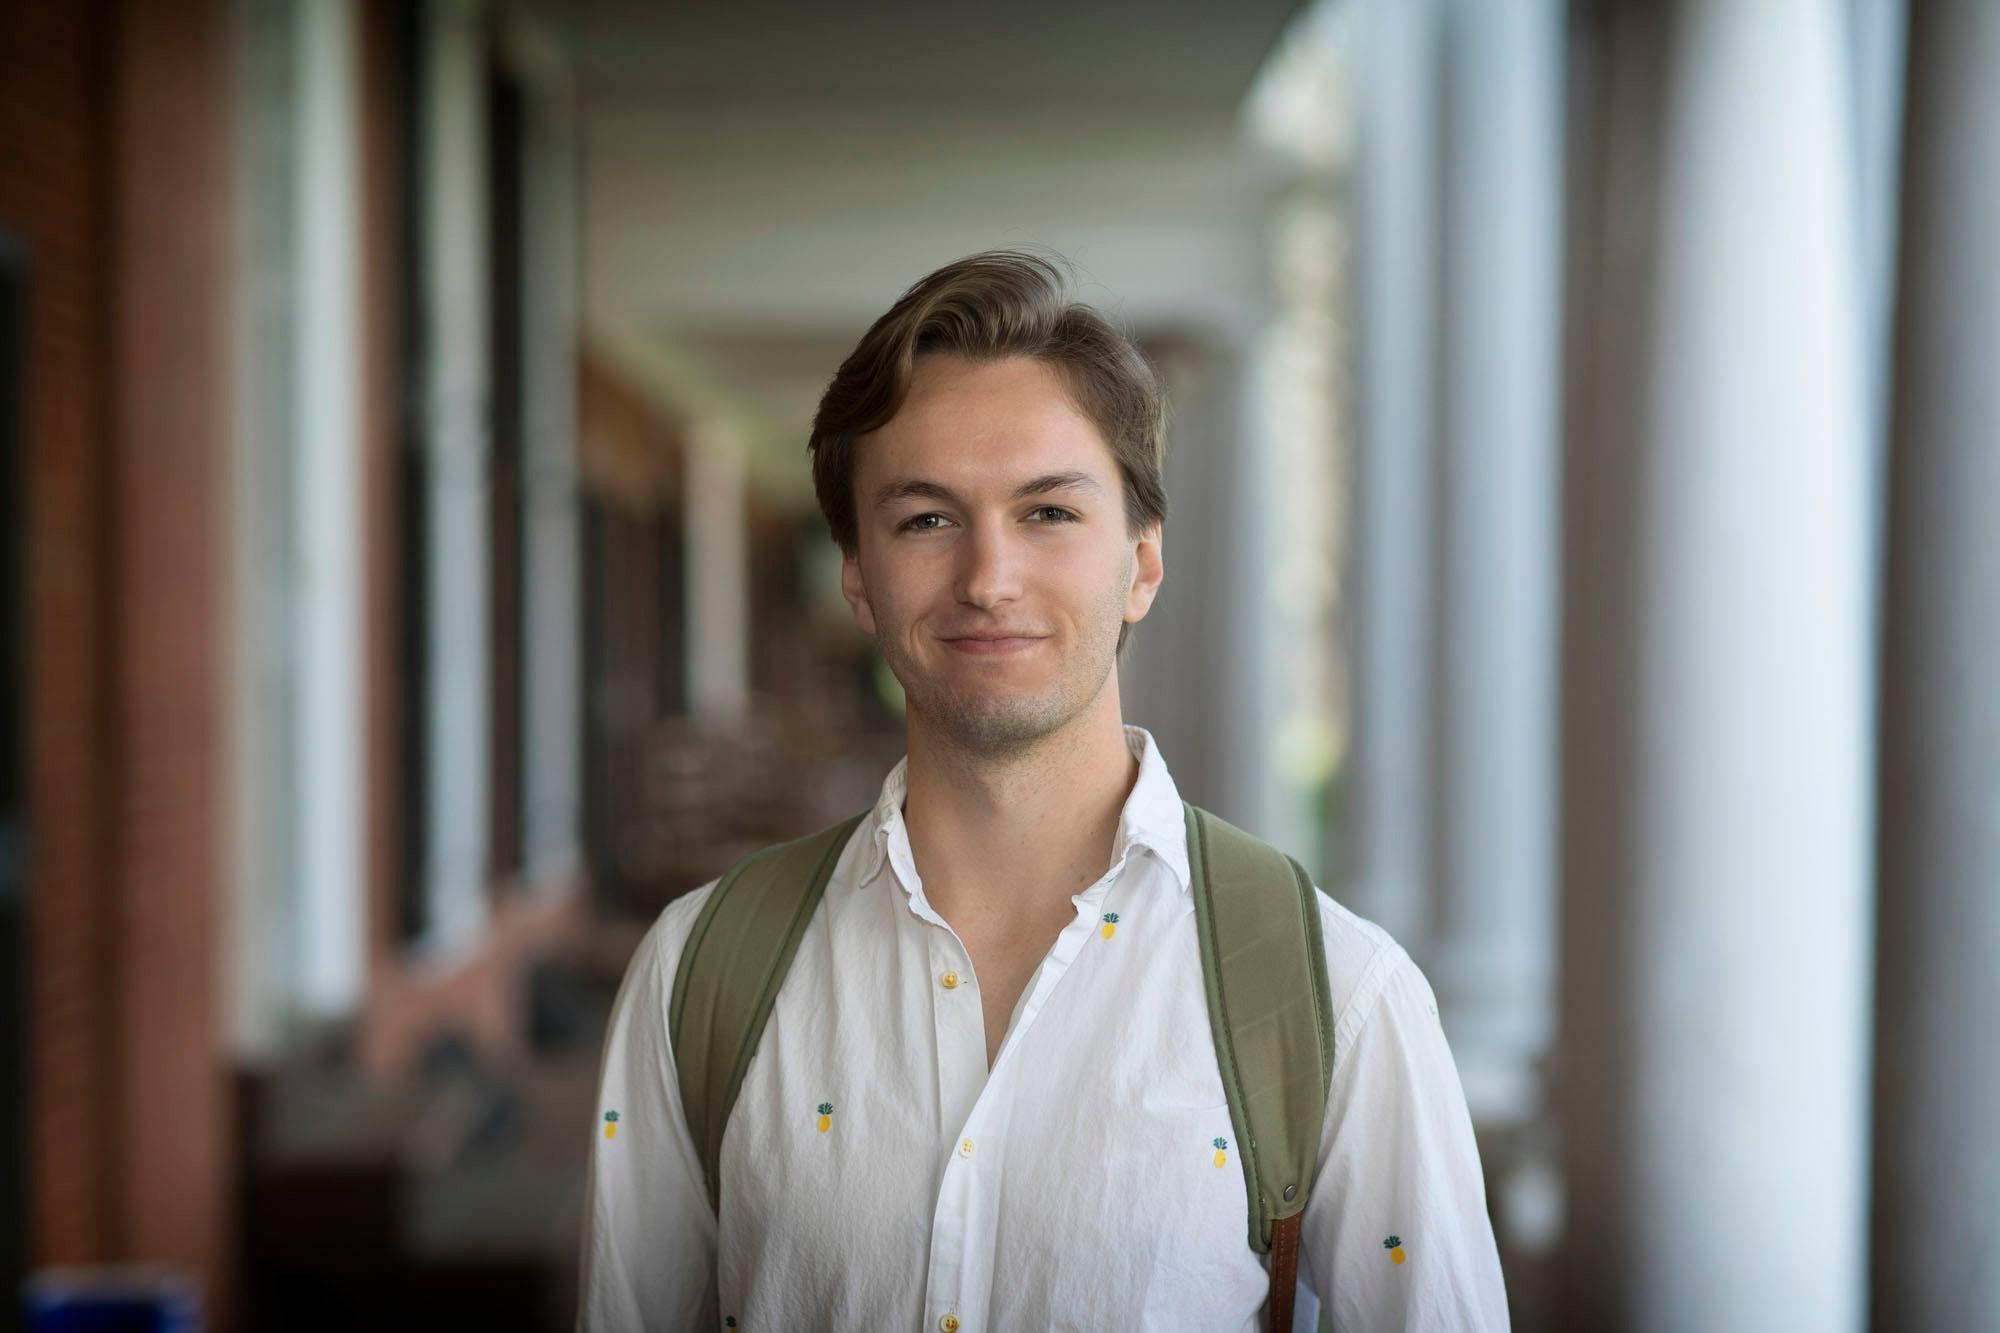 Fourth-year economics major Clement Bohr will pursue his Ph.D. at Northwestern University after graduation in May.